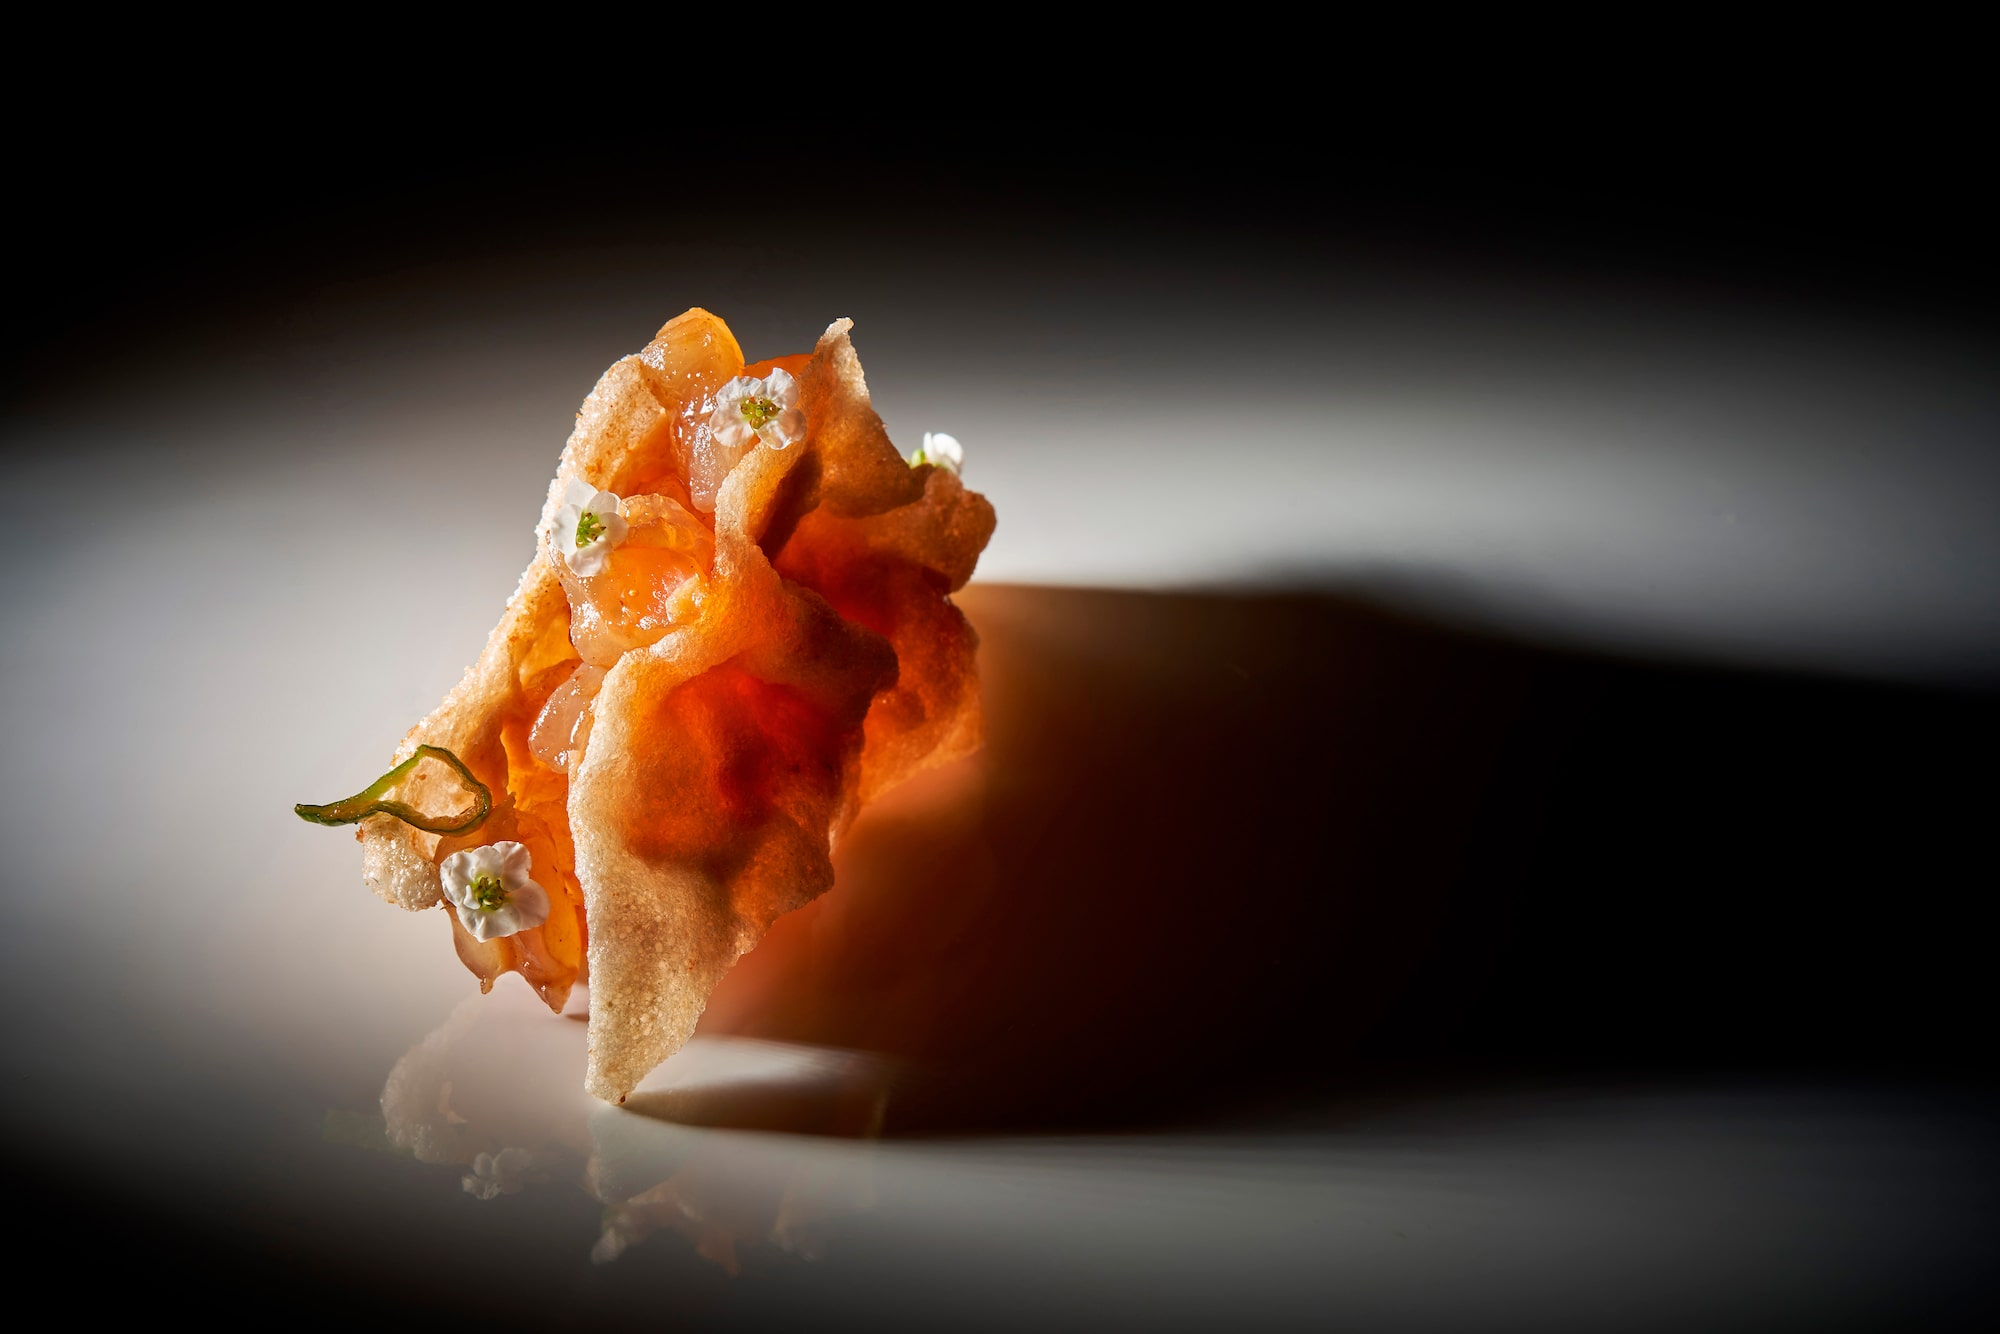 pablo gil sony alpha 7RM3 a prawn cracker decorated with jelly and chilli pieces boldly lit on a white plate